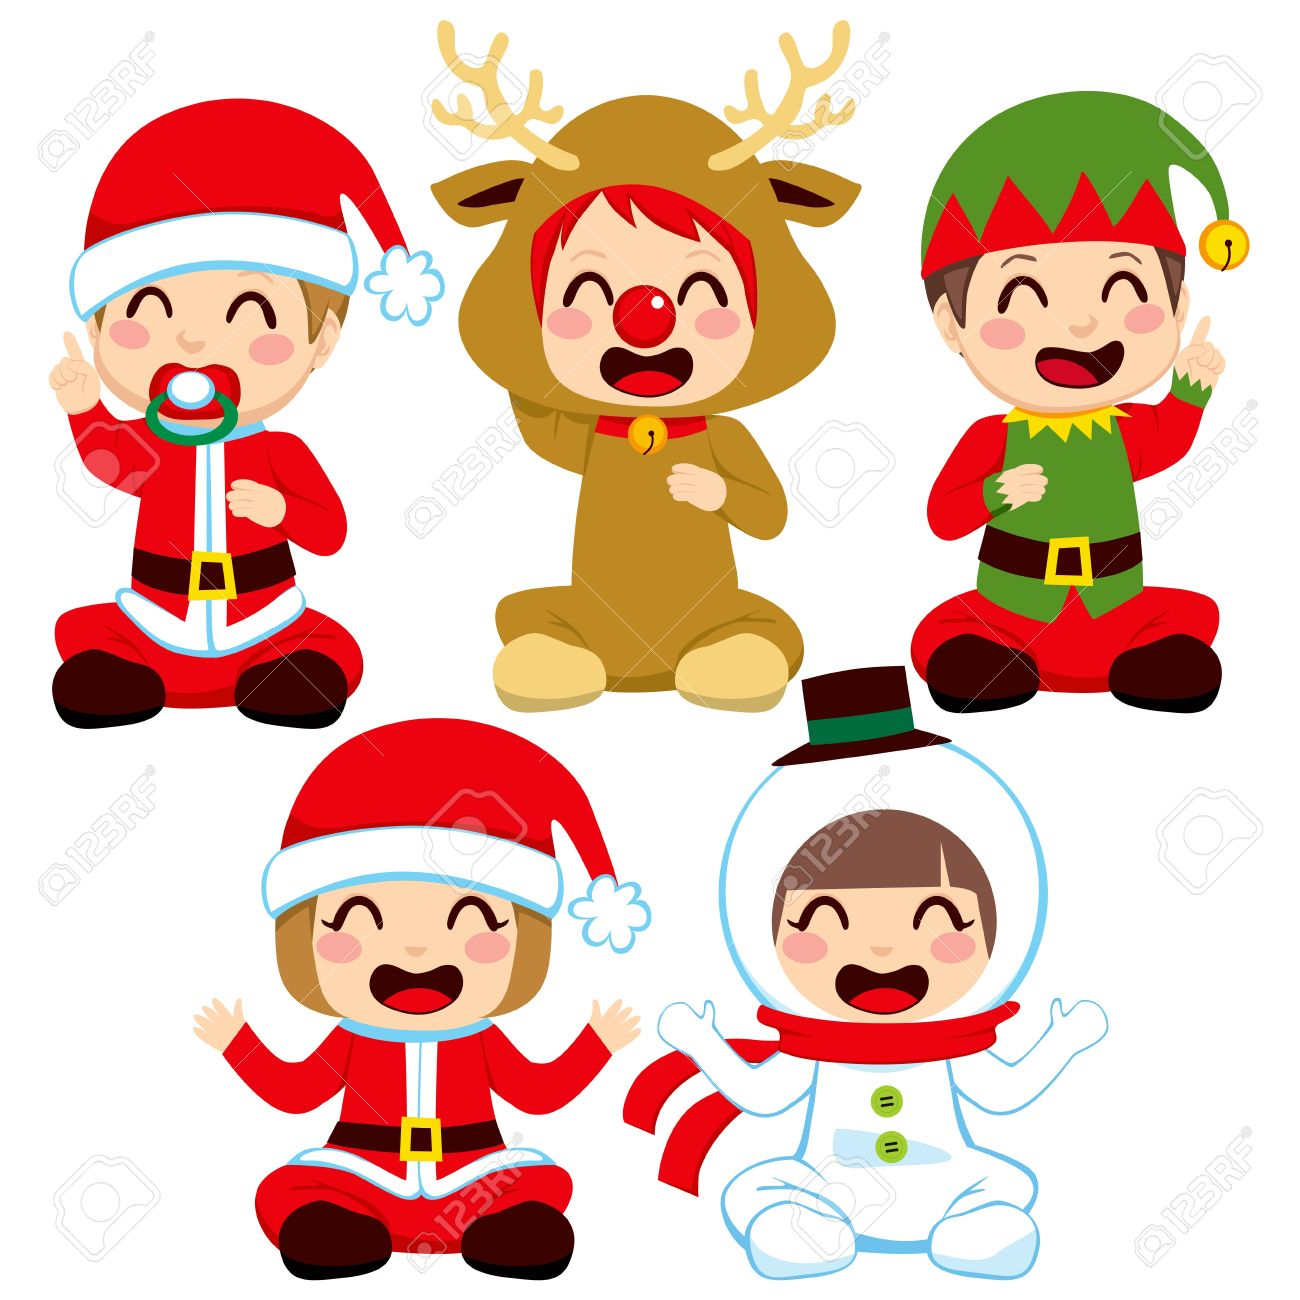 Little babies dressed in adorable Christmas costumes.